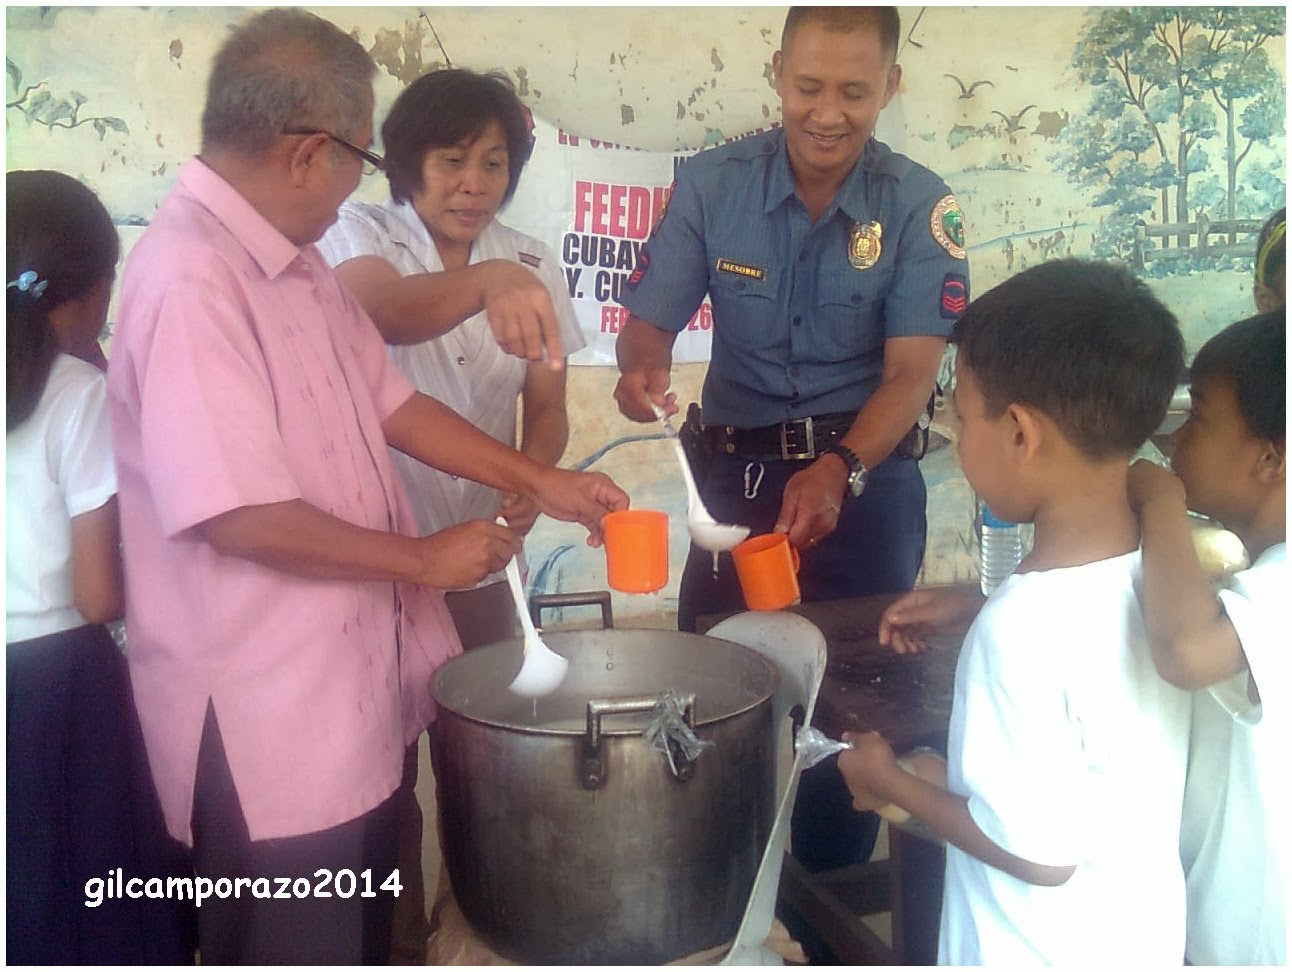 Sir Camporazo assisting in feeding the pupils with his teacher